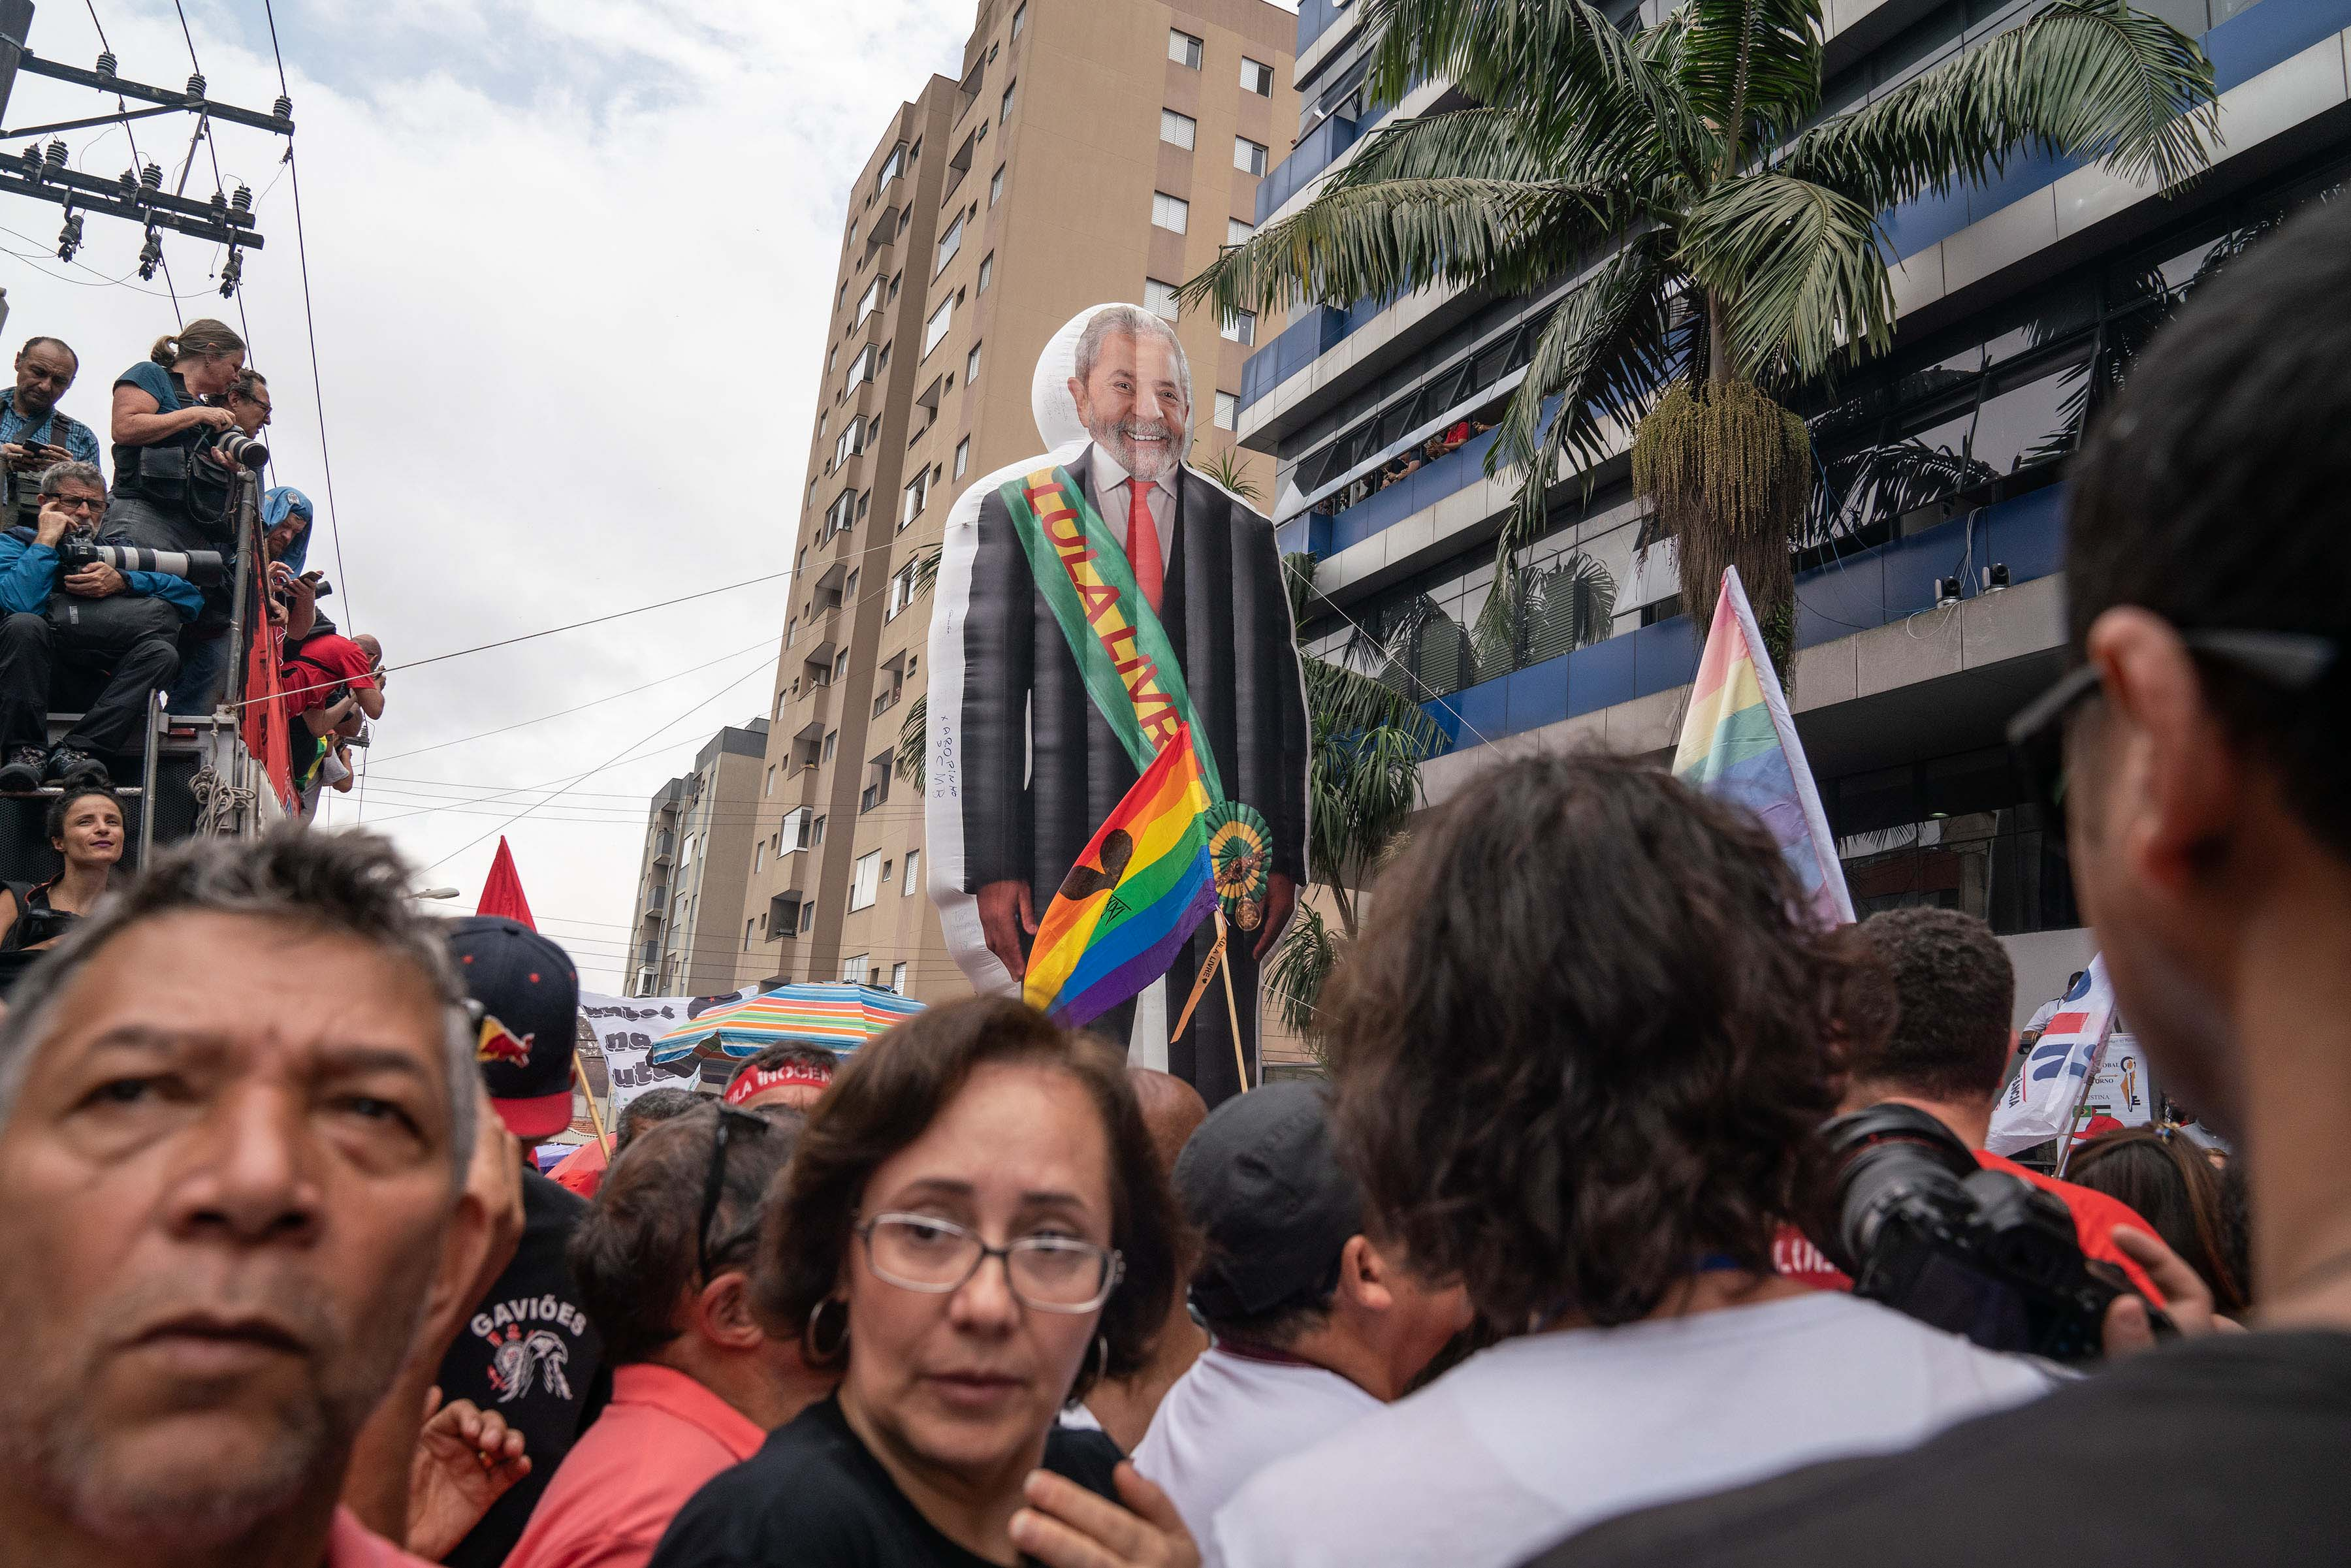 9 November 2019: A giant blow-up figure of Luiz Inácio Lula da Silva is part of the celebration at the rally held after his release from prison.